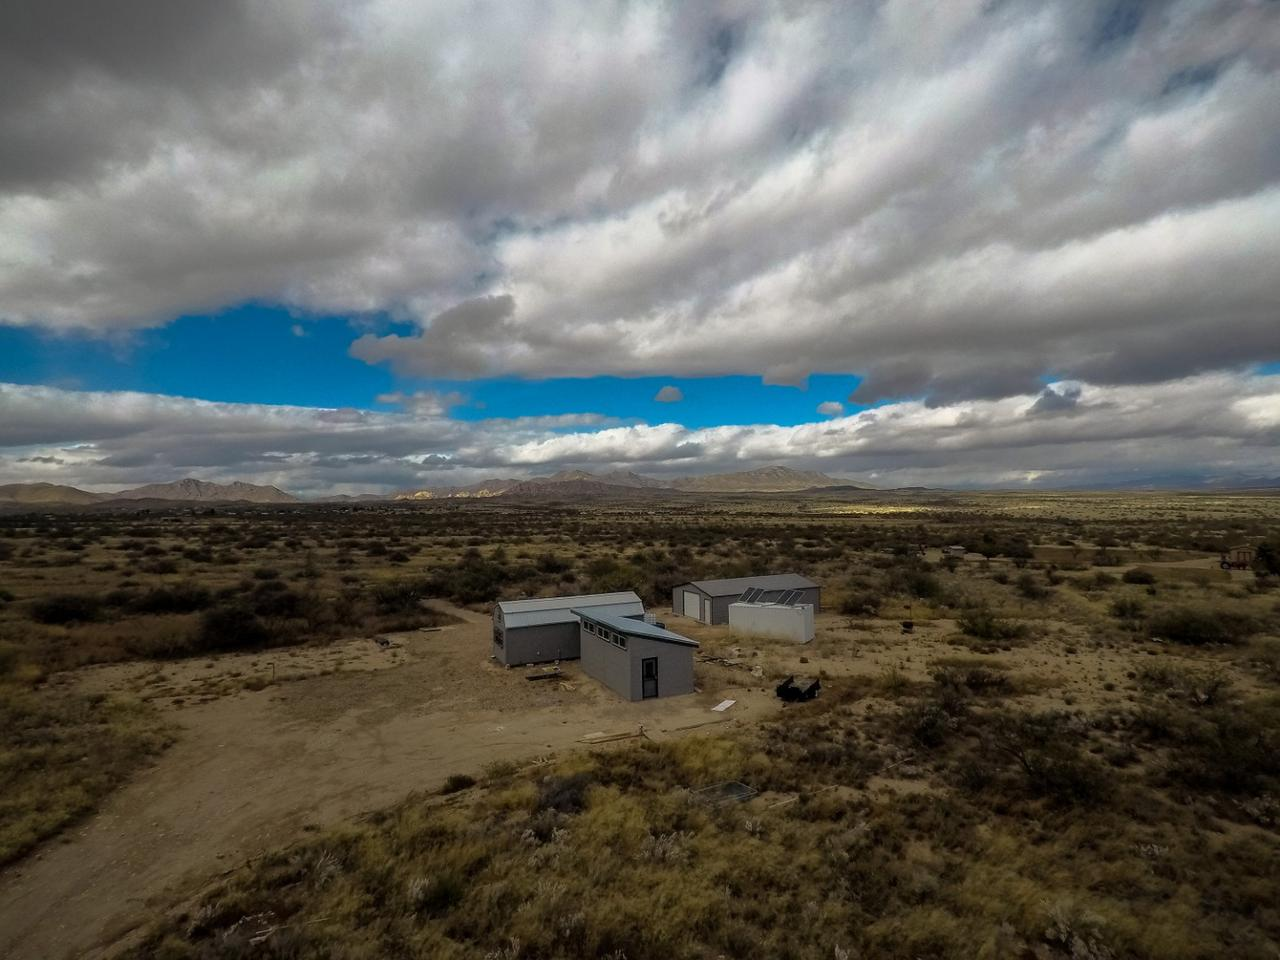 Nestled just outside of Dragoon, Arizona, sits this off grid tiny home.